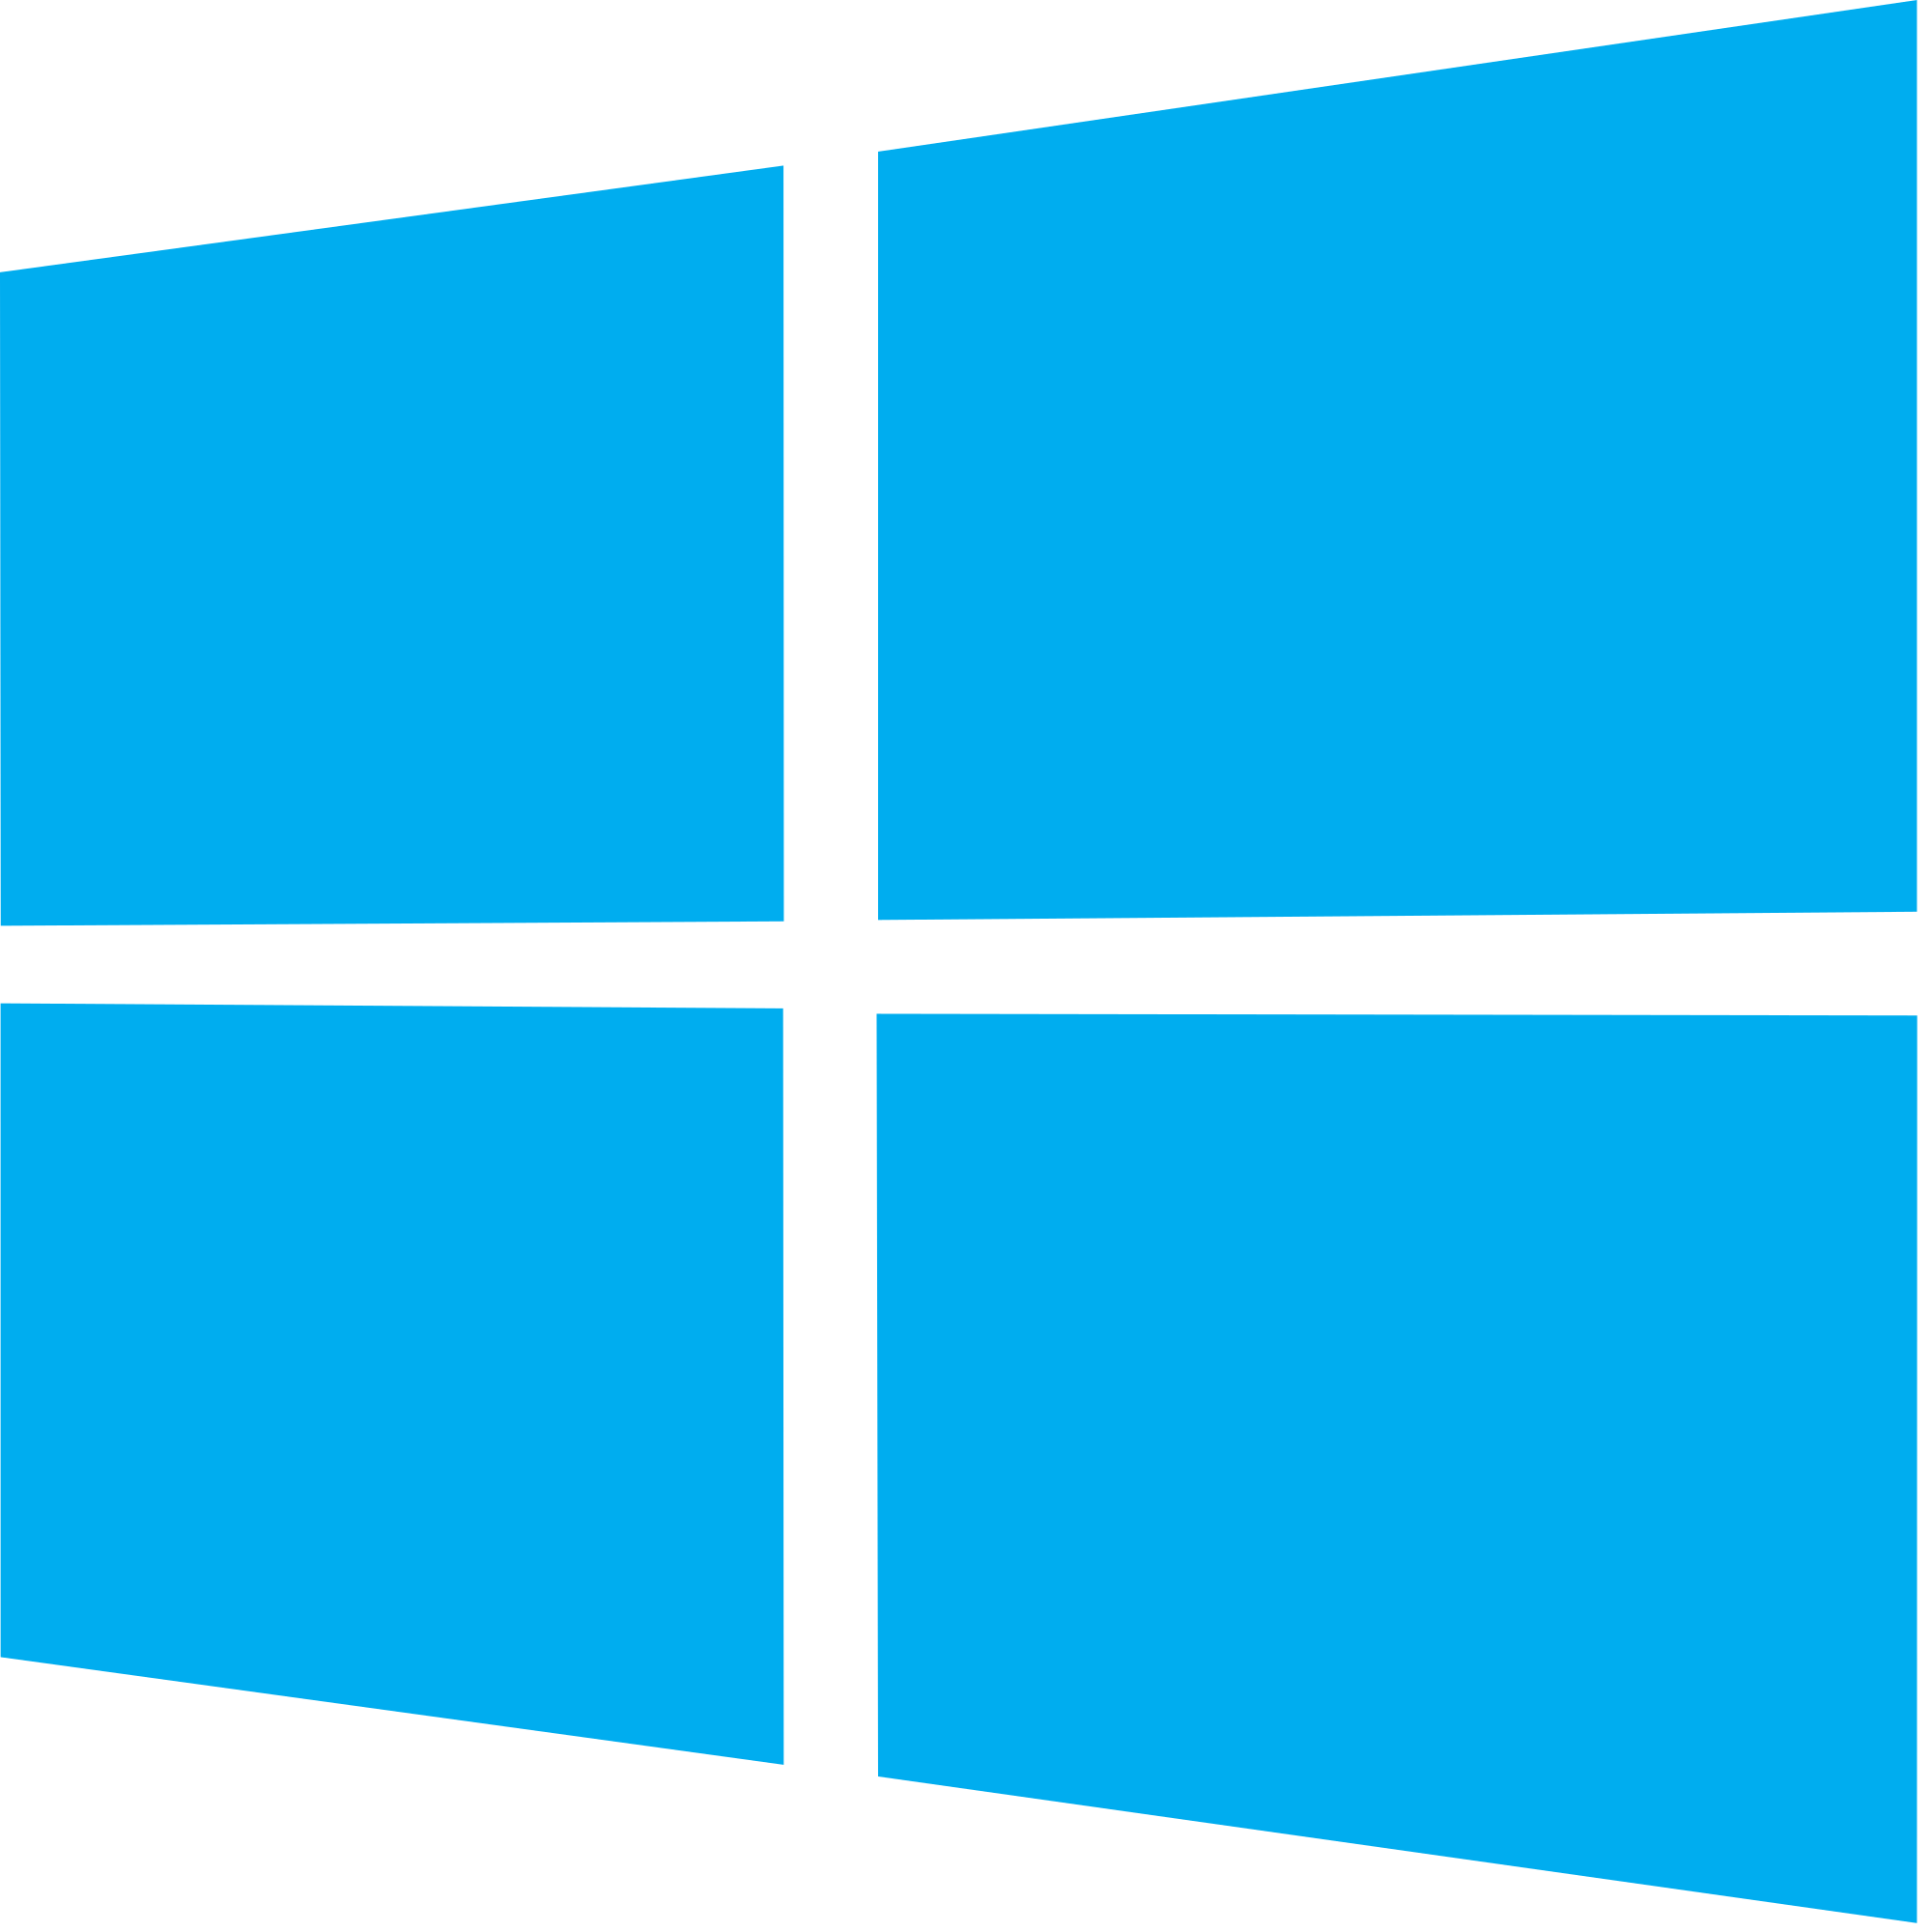 Windows logo png transparent background. File wikimedia commons new